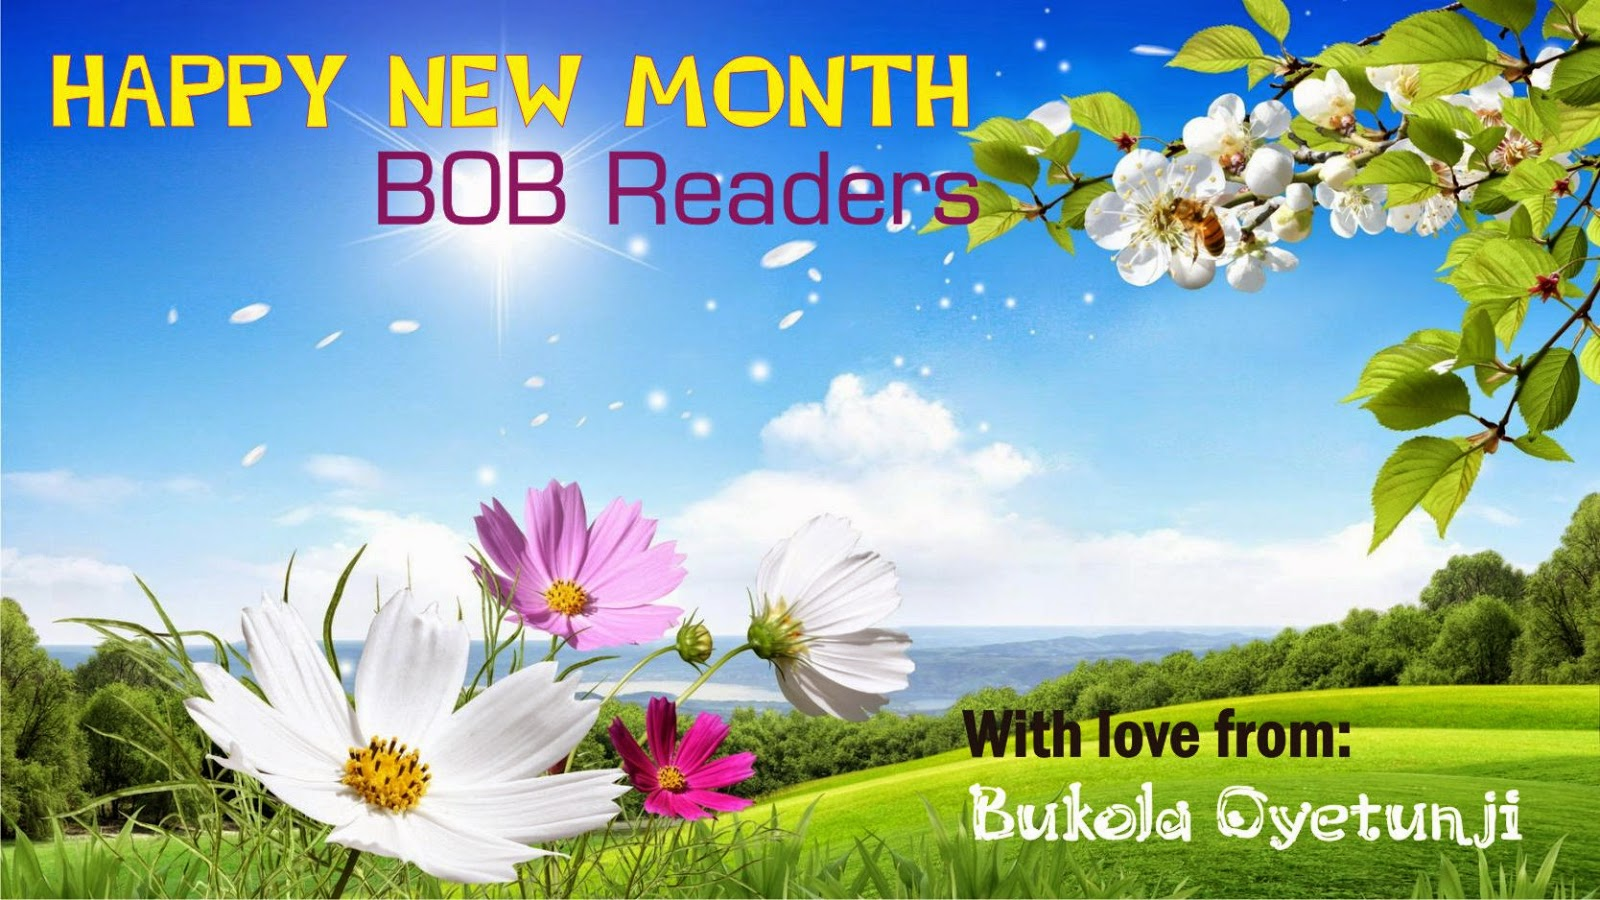 Happy new month bob readers welcome to the ember months where all your